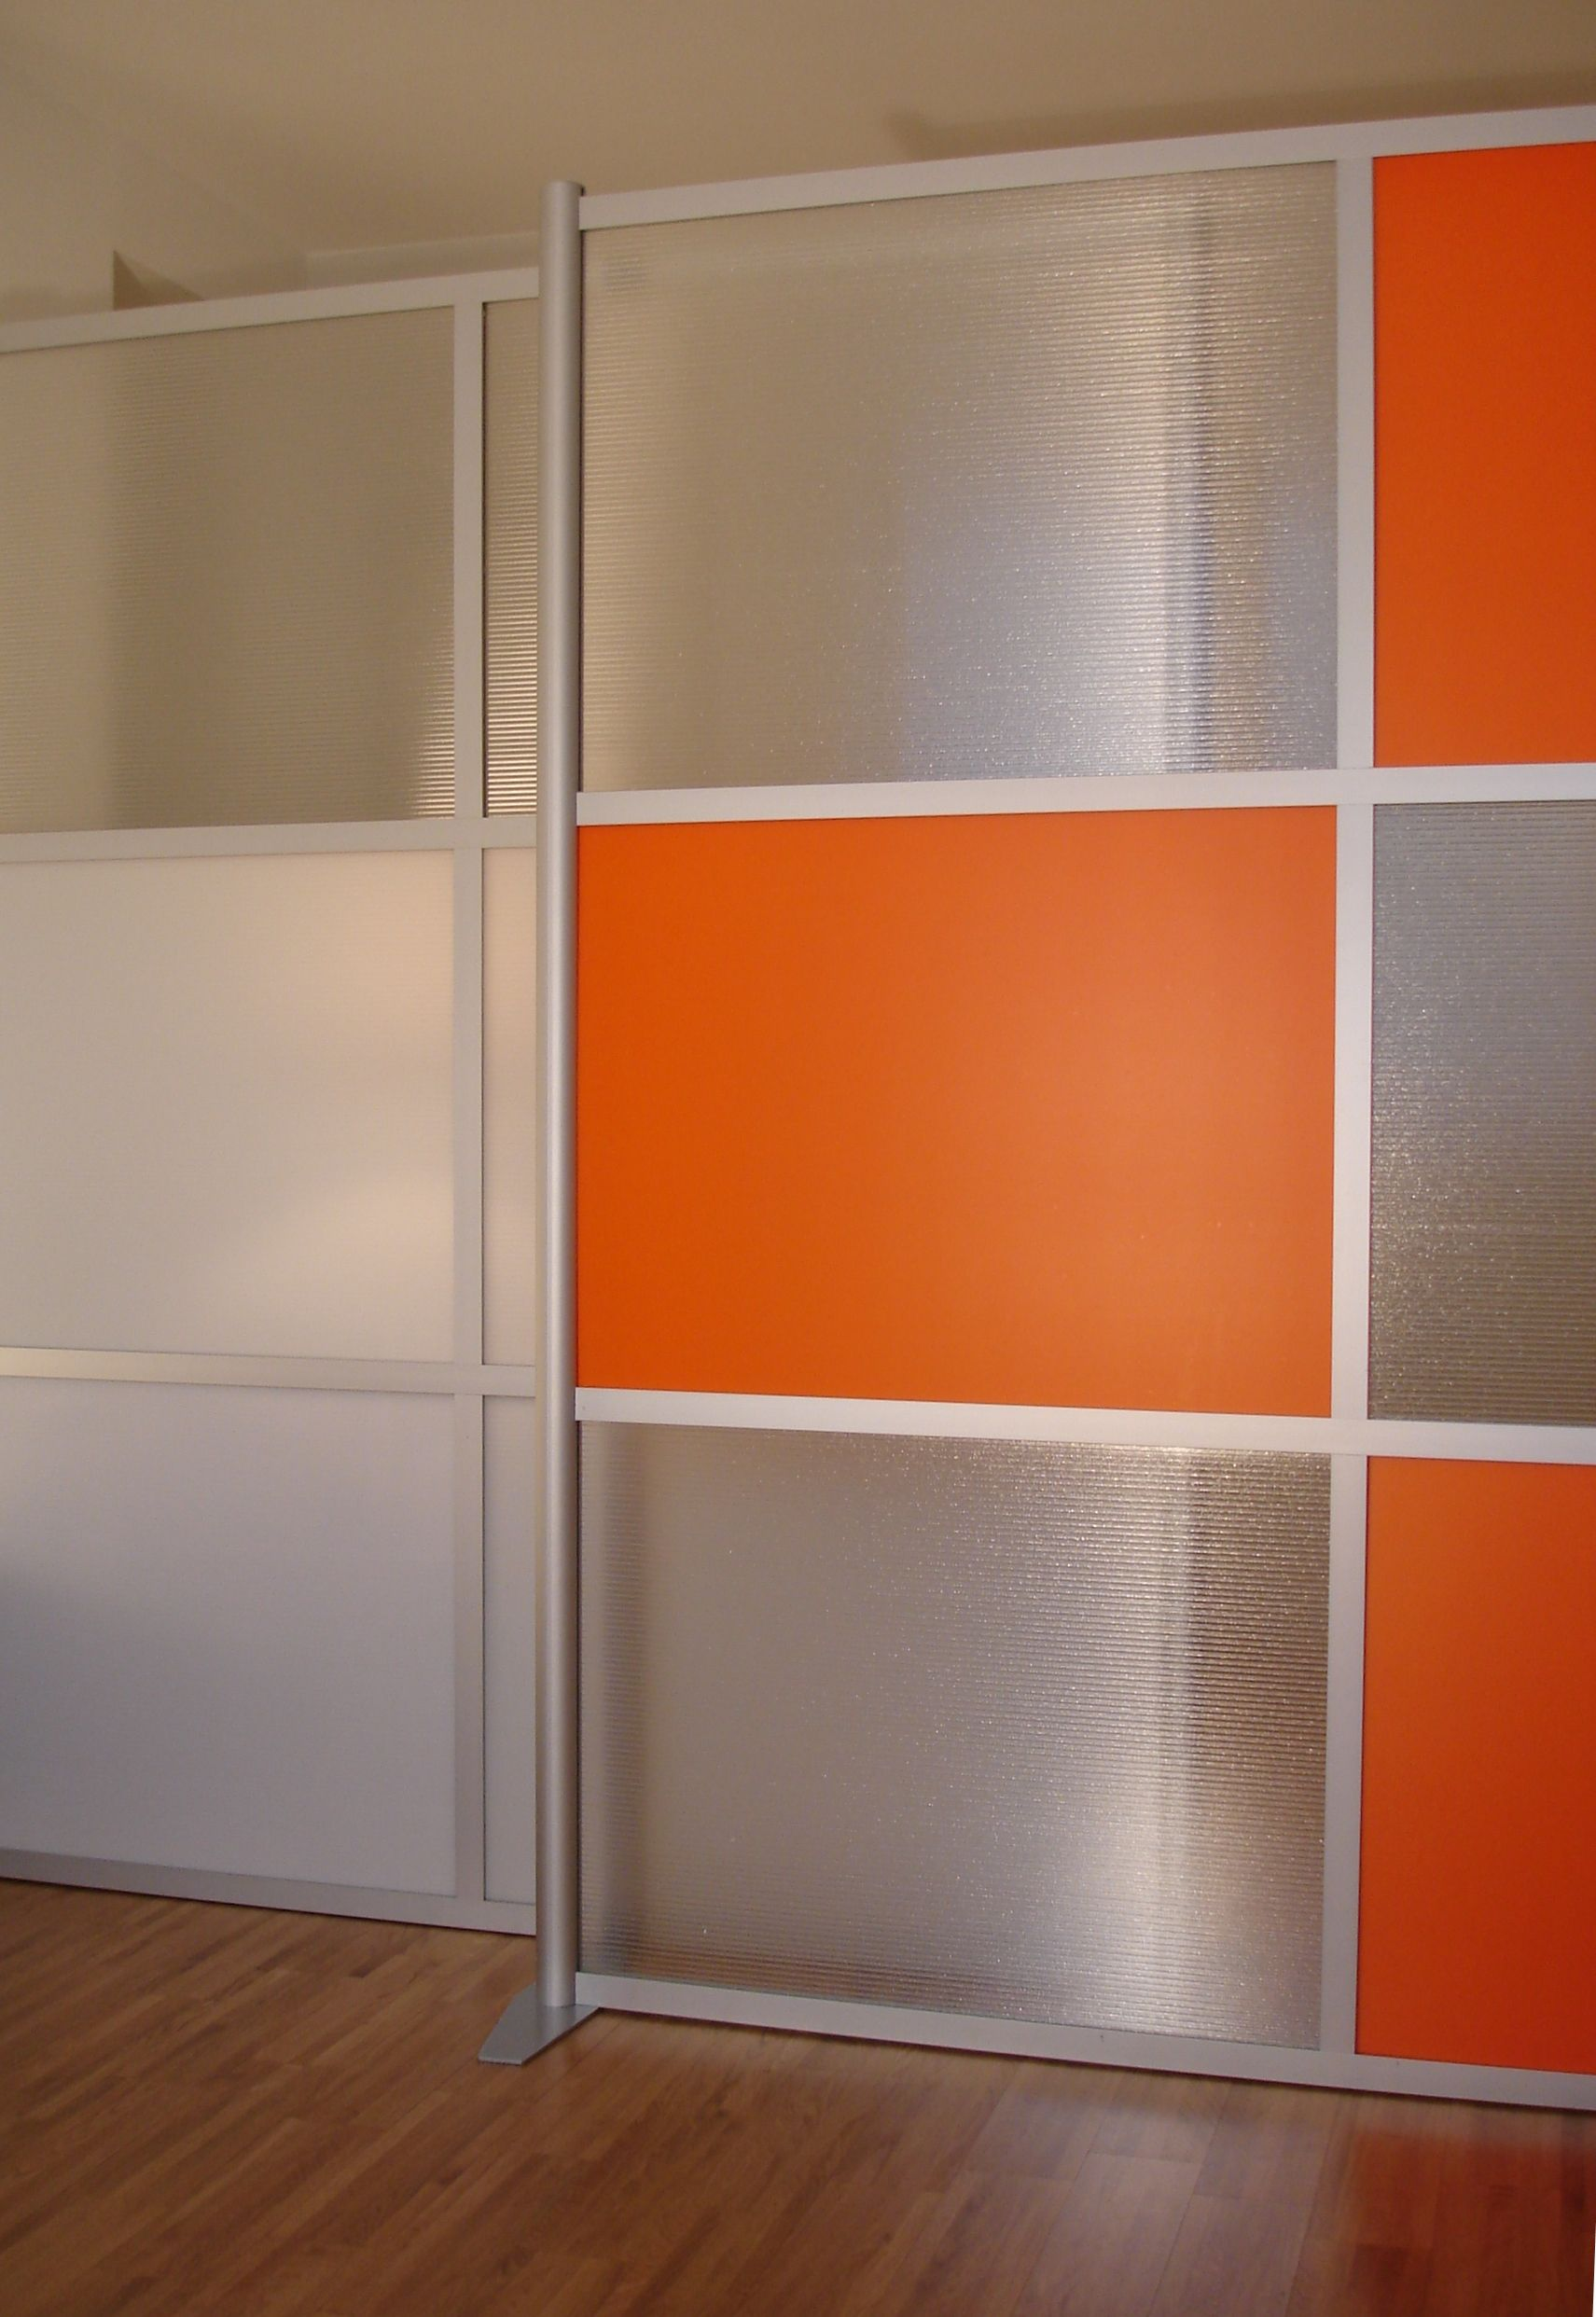 Studio Wall Modern With Orange And Grey Modular Room Dividers